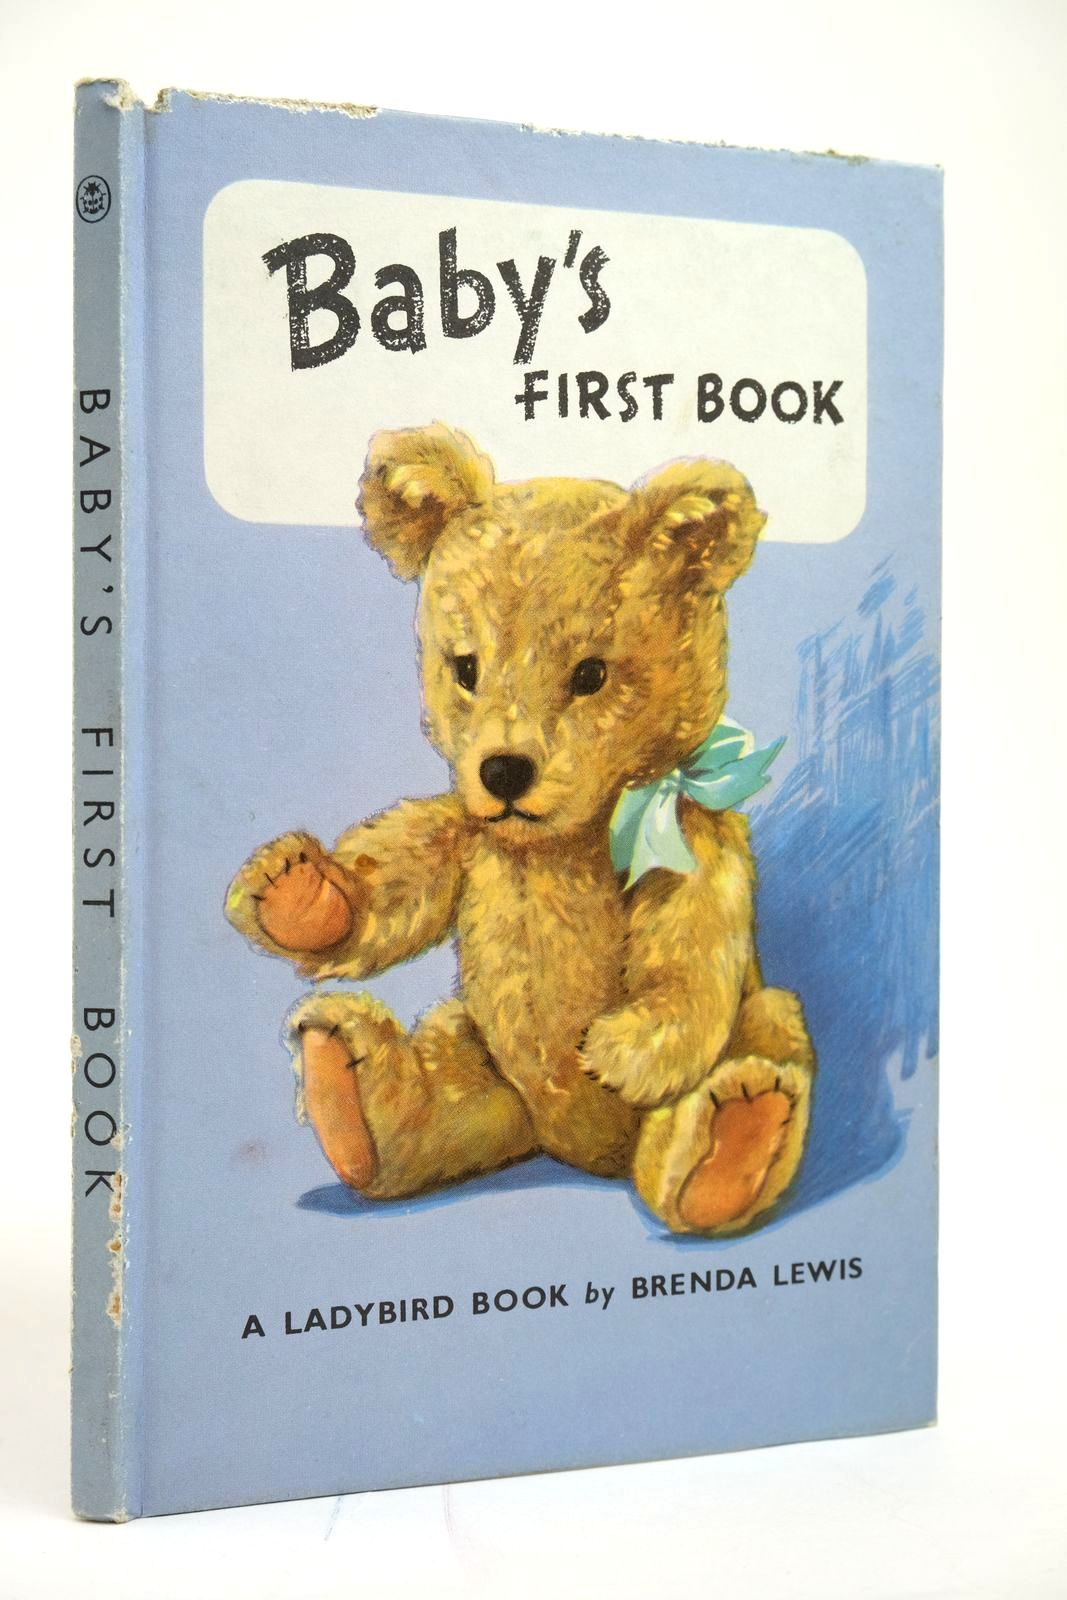 Photo of BABY'S FIRST BOOK written by Lewis, Brenda illustrated by Woolley, H. published by Wills & Hepworth Ltd. (STOCK CODE: 2135158)  for sale by Stella & Rose's Books